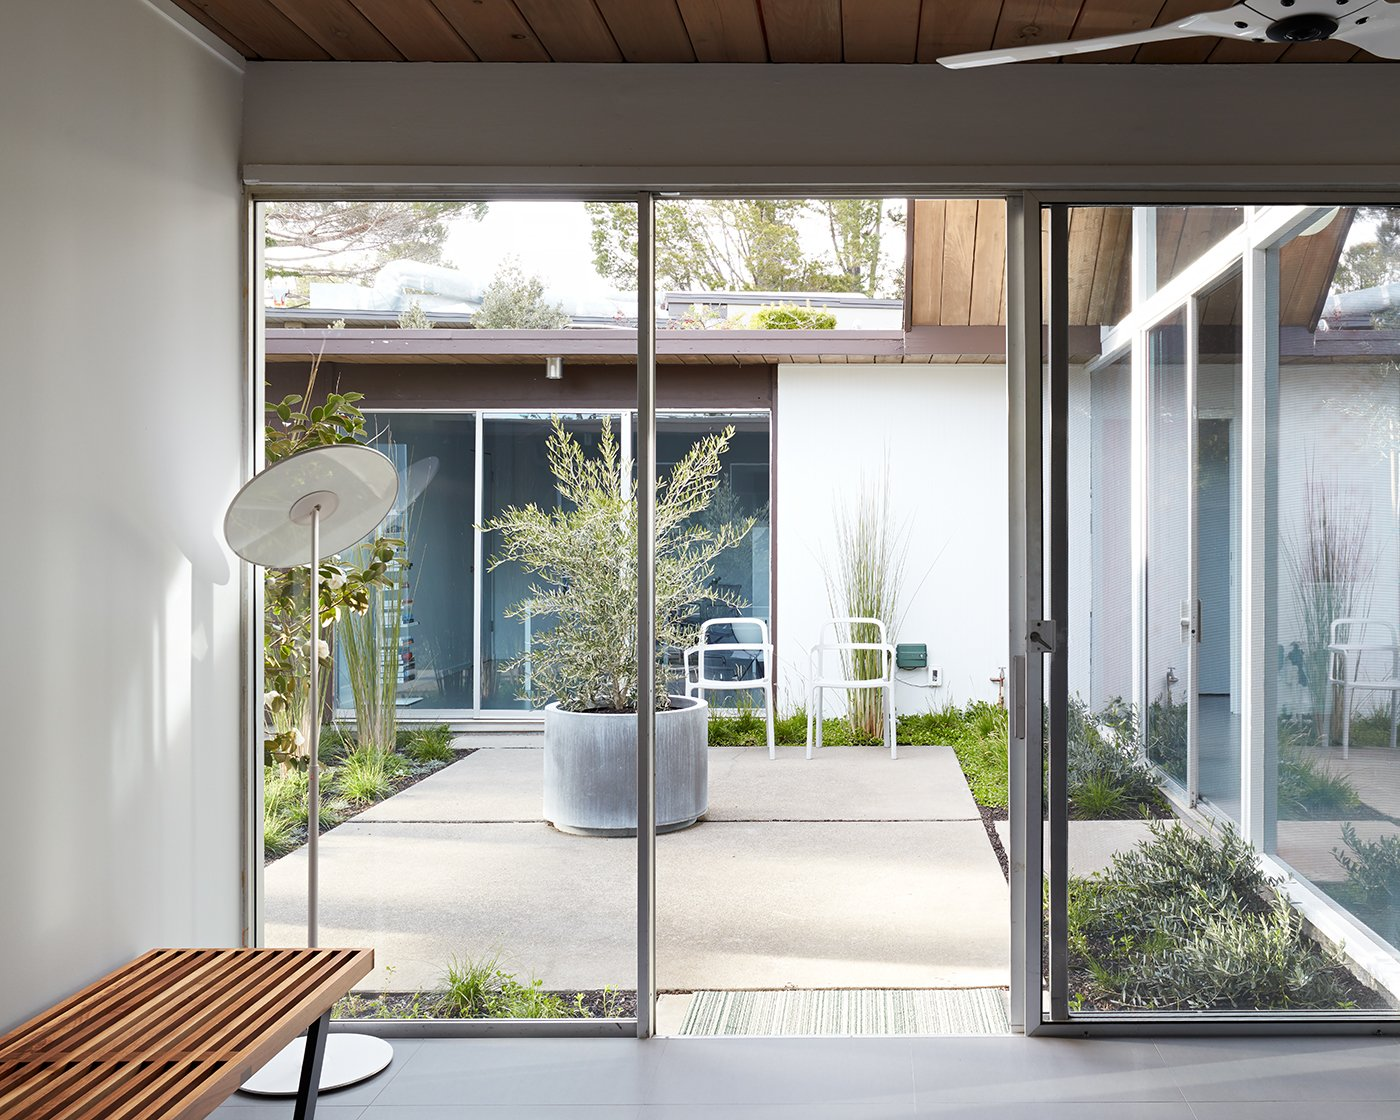 Outdoor, Garden, Shrubs, Grass, Small Patio, Porch, Deck, and Walkways The goal of the remodel was to preserve the home's classic look, while also updating it.     Photo 2 of 14 in This Eichler Home in California Mixes Scandinavian Vibes With Midcentury Charm